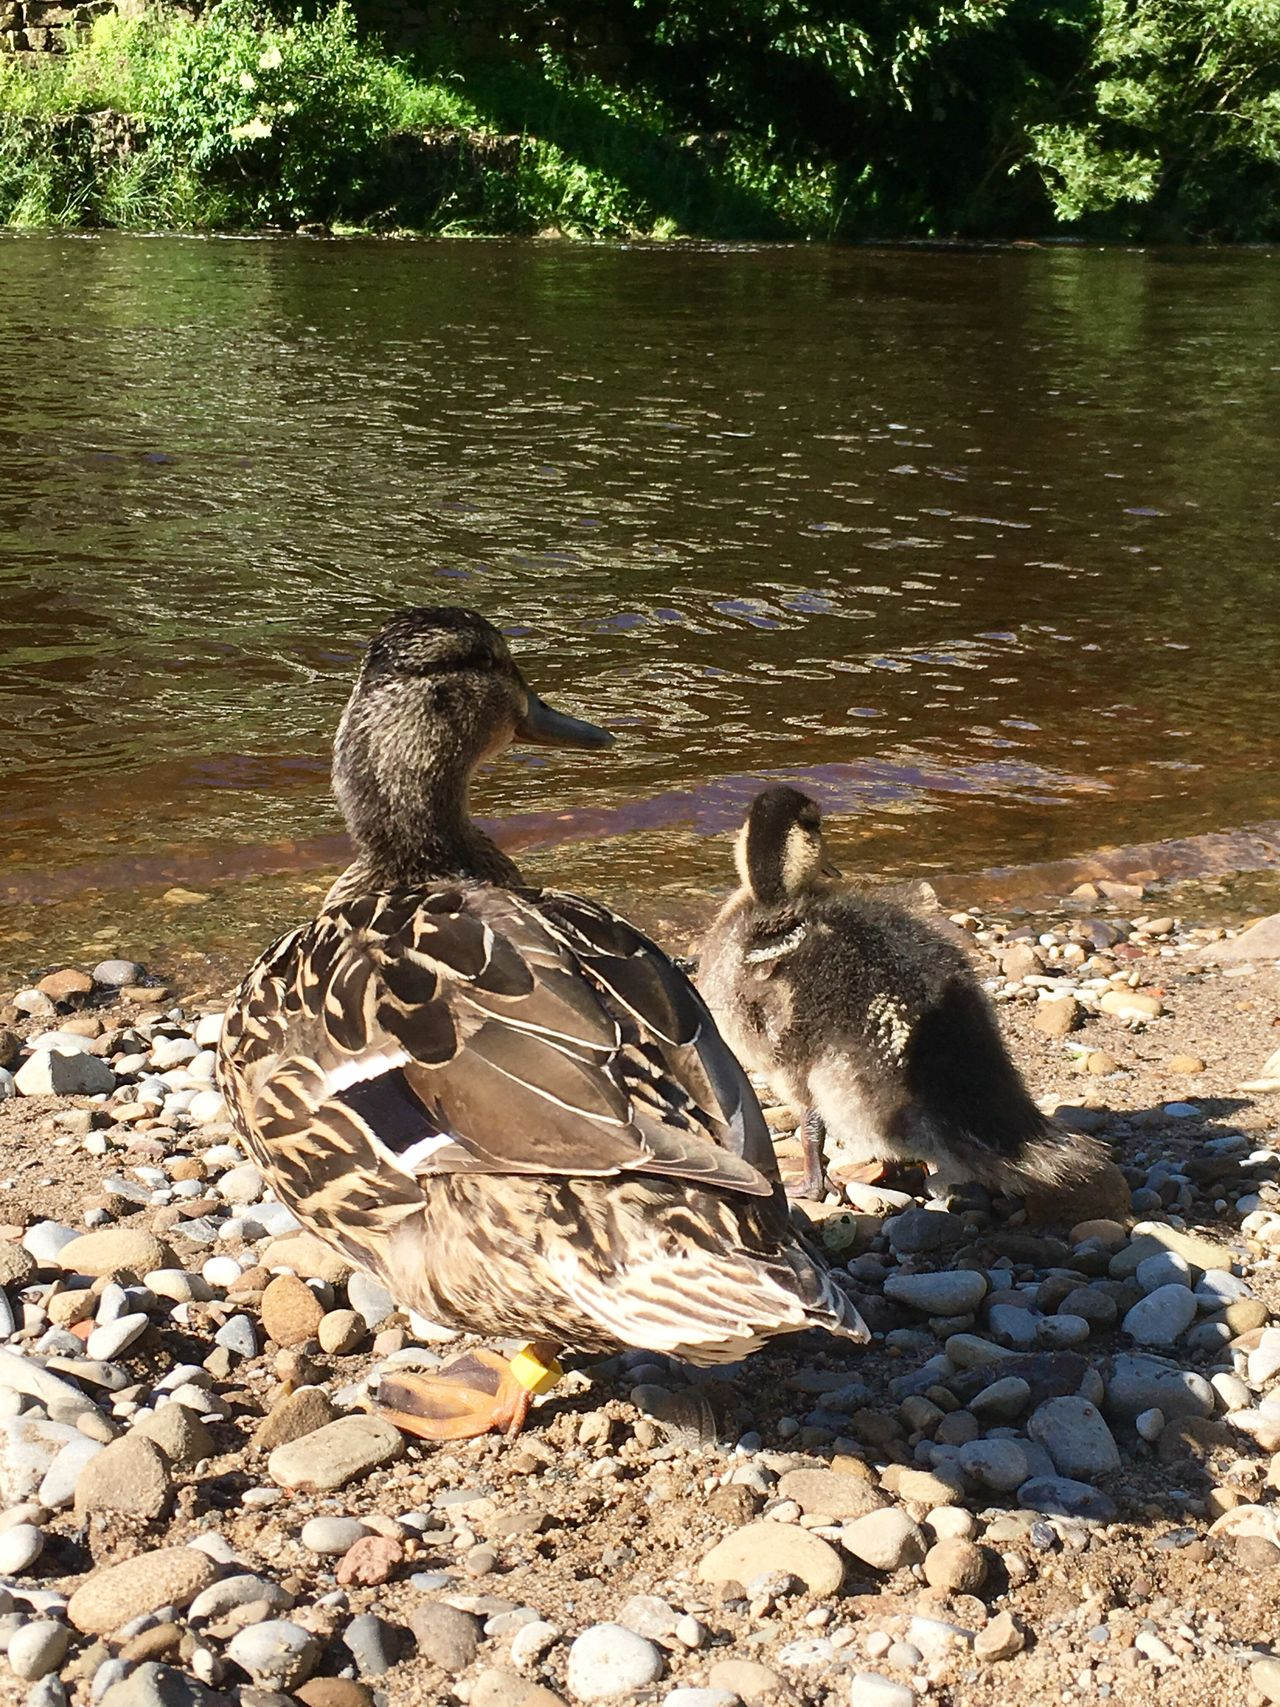 Ilkley Ilkley River River Wharfe Yorkshire Countryside Duck Duckling Mother And Ducklings Mother Duck With Duckling Mother Duck Nature Family Learning Teaching Sunshine Relaxing